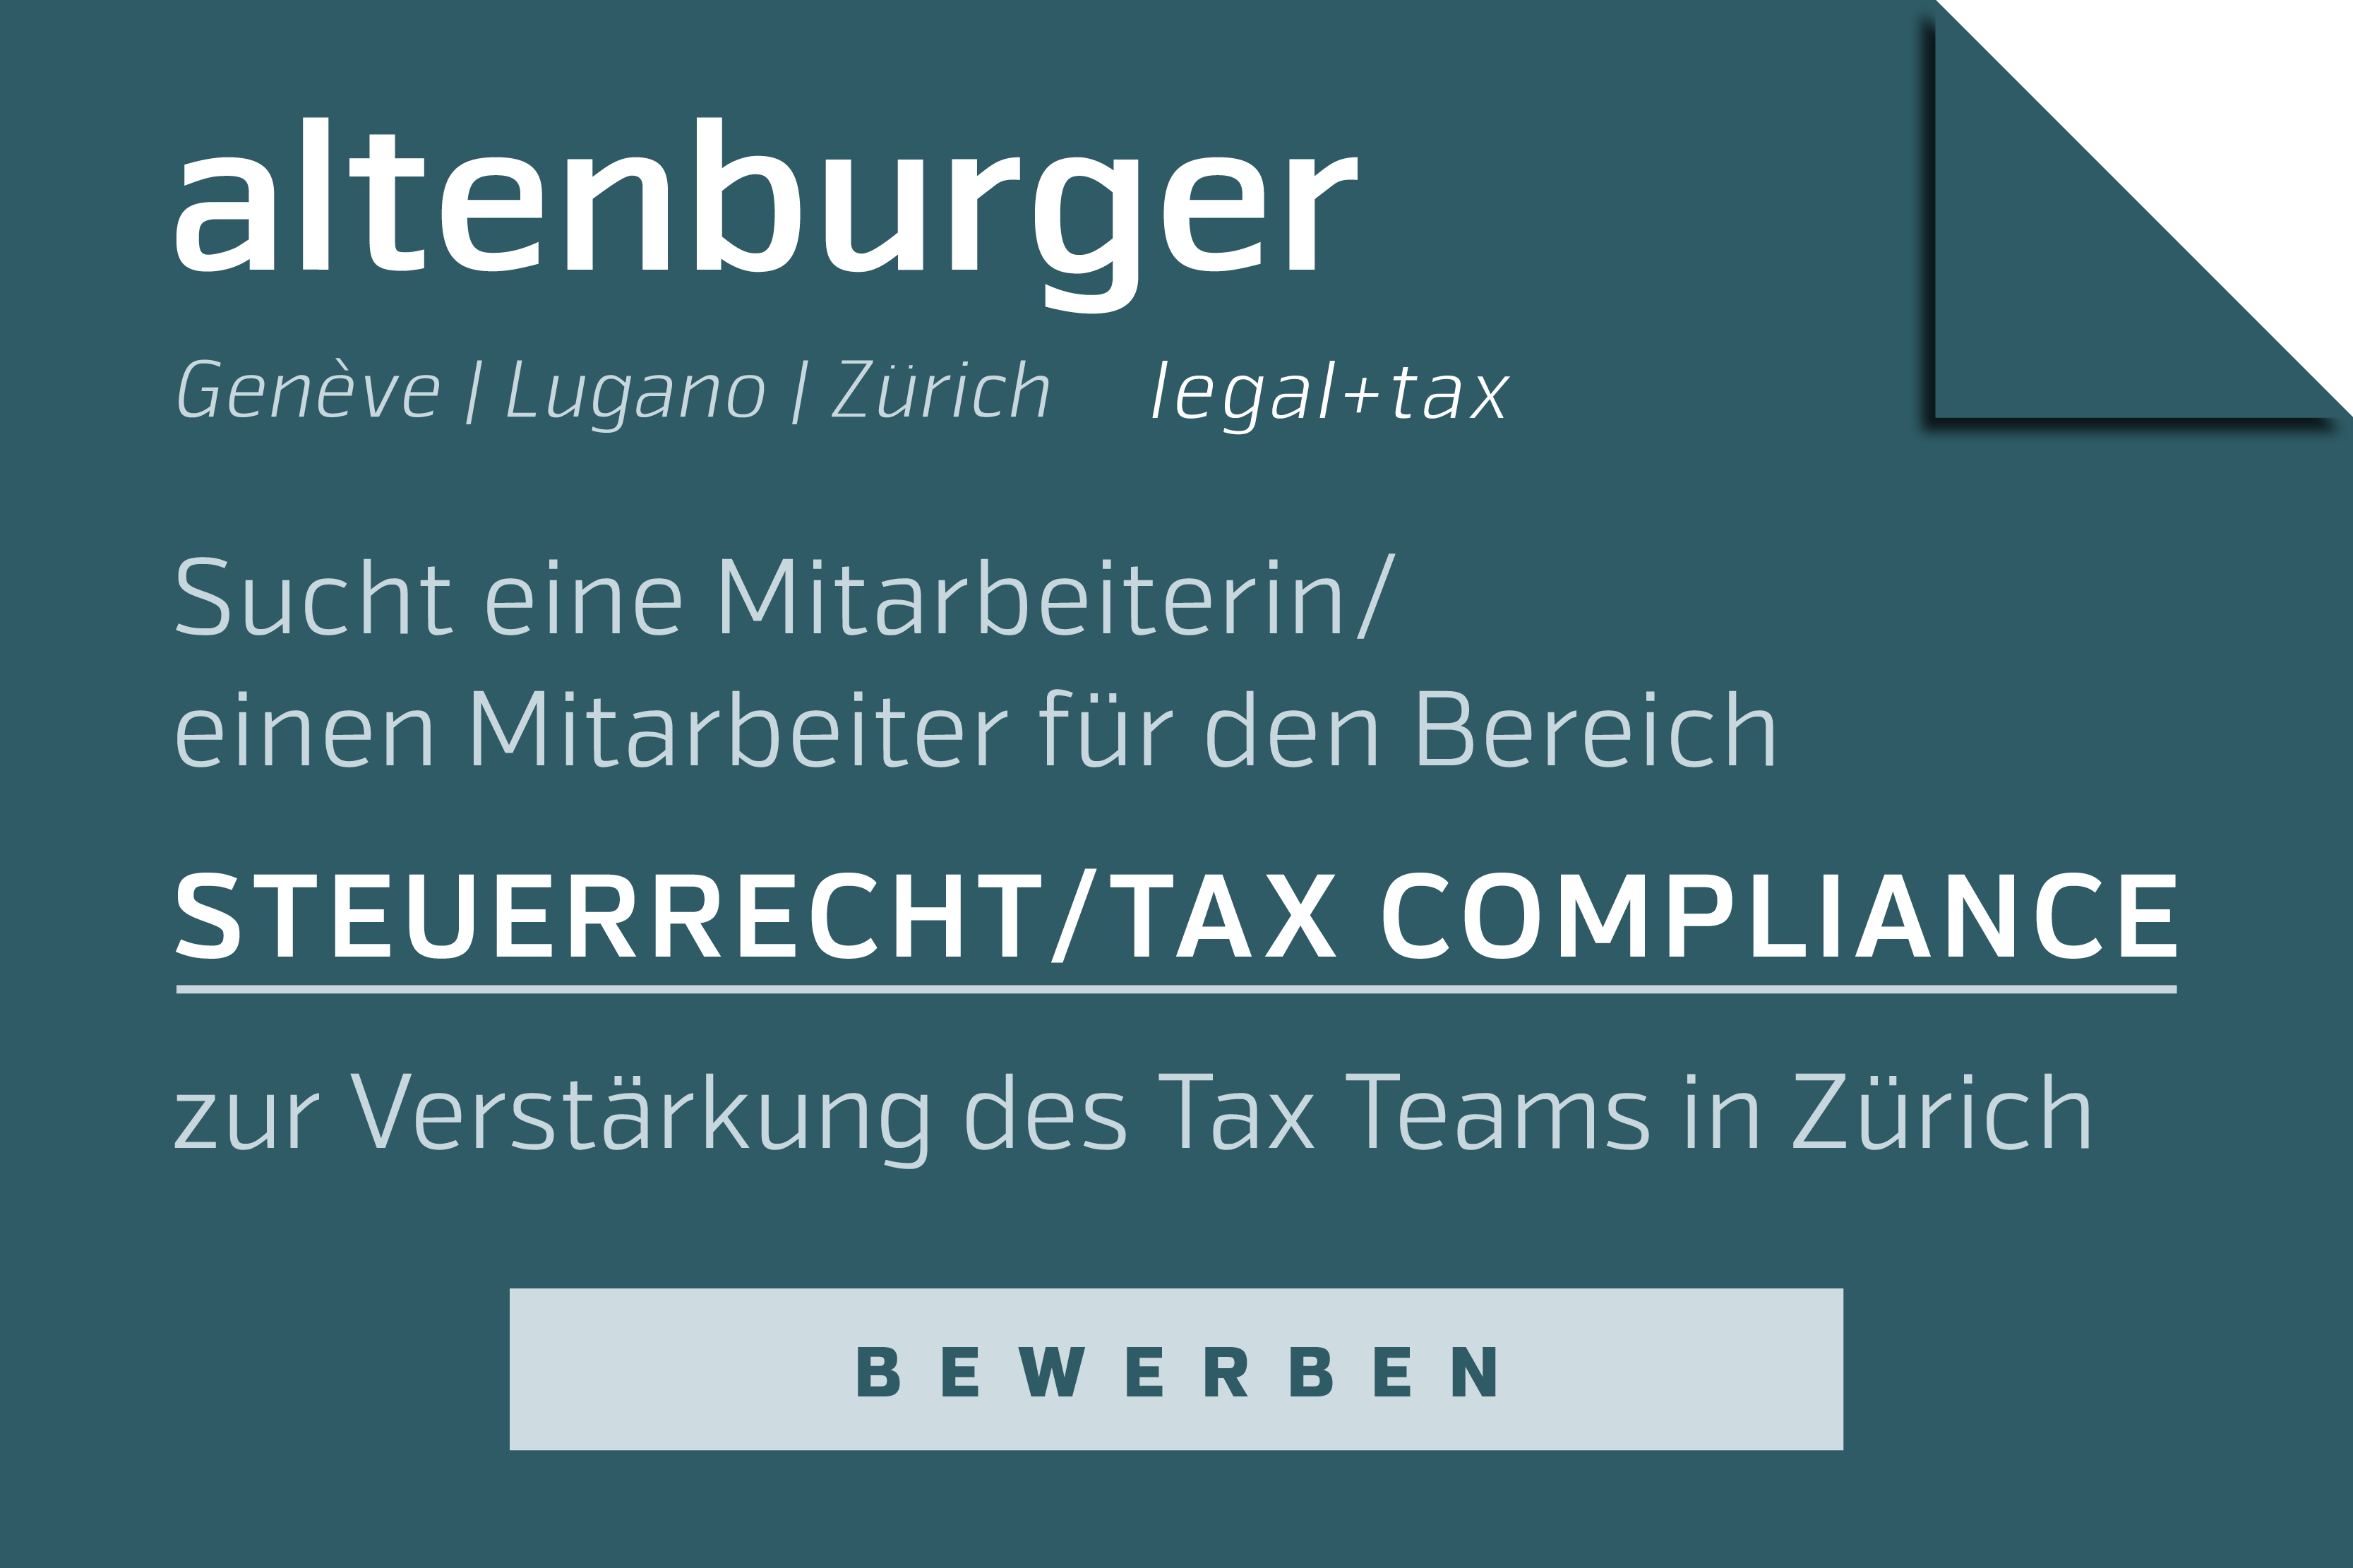 https://www.altenburger.ch/career/tax-compliancerecht/